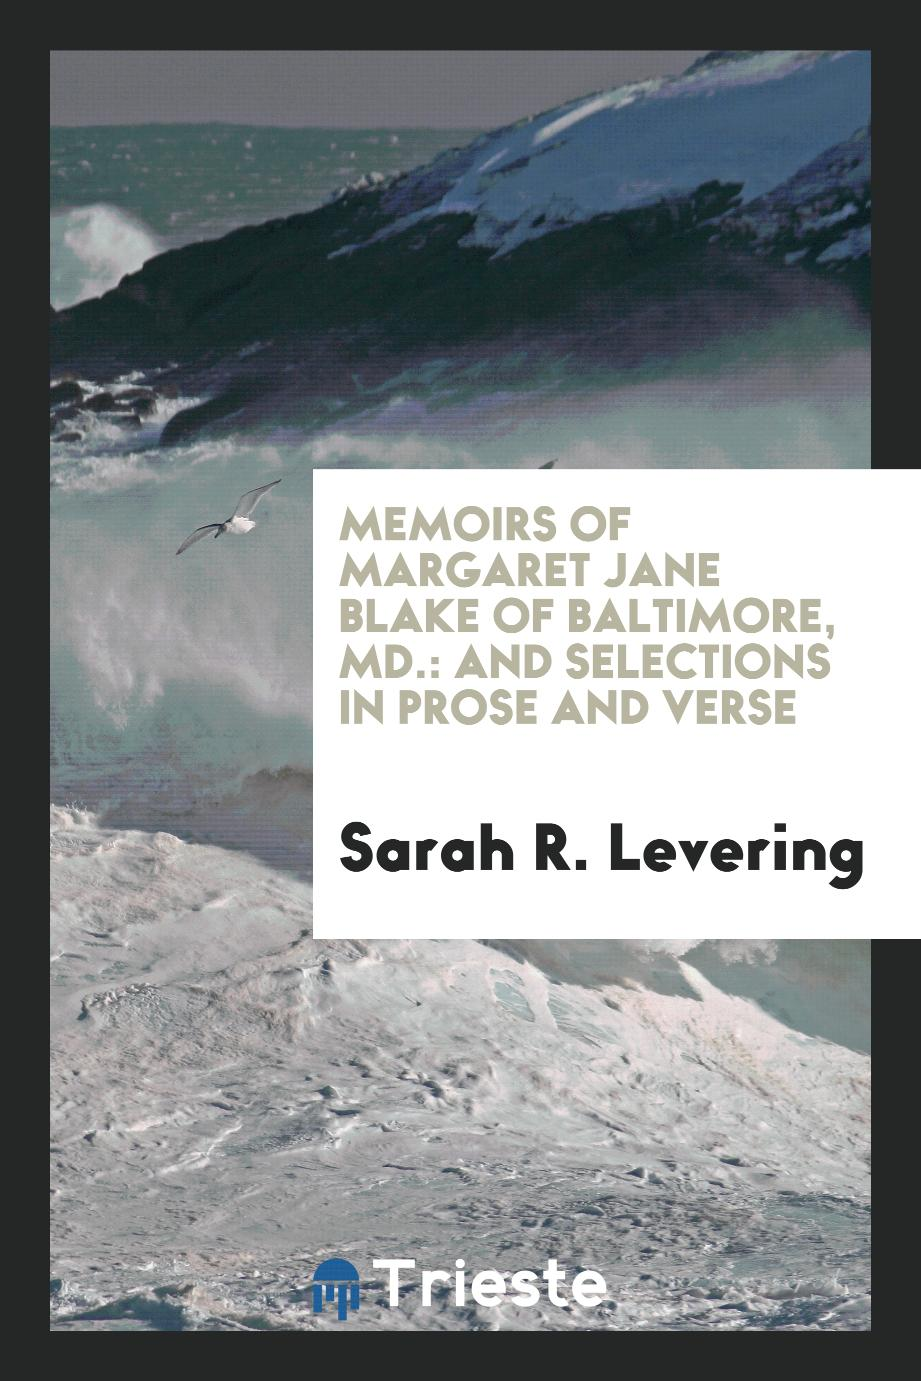 Sarah R. Levering - Memoirs of Margaret Jane Blake of Baltimore, Md.: And Selections in Prose and Verse